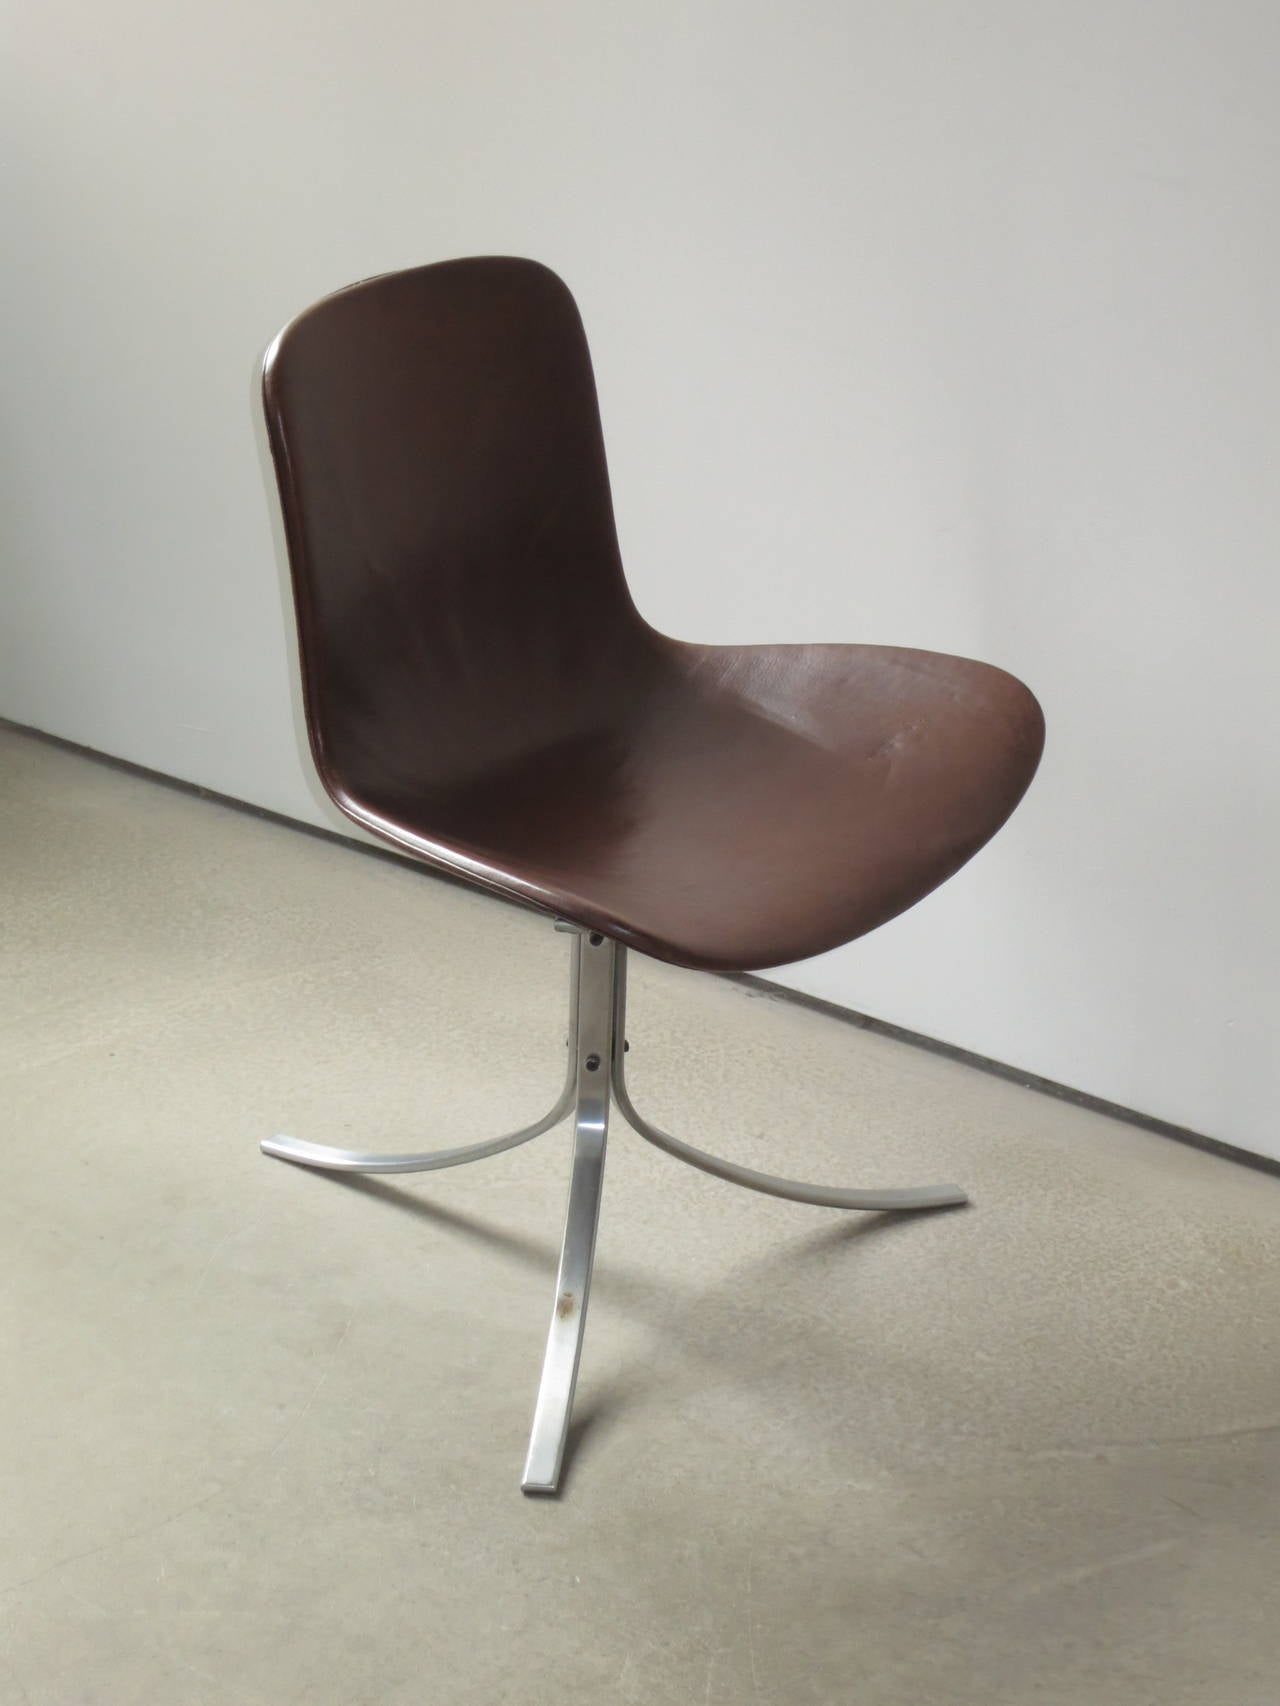 PK-9 Chair by Poul Kjærholm in patinated brown leather 2